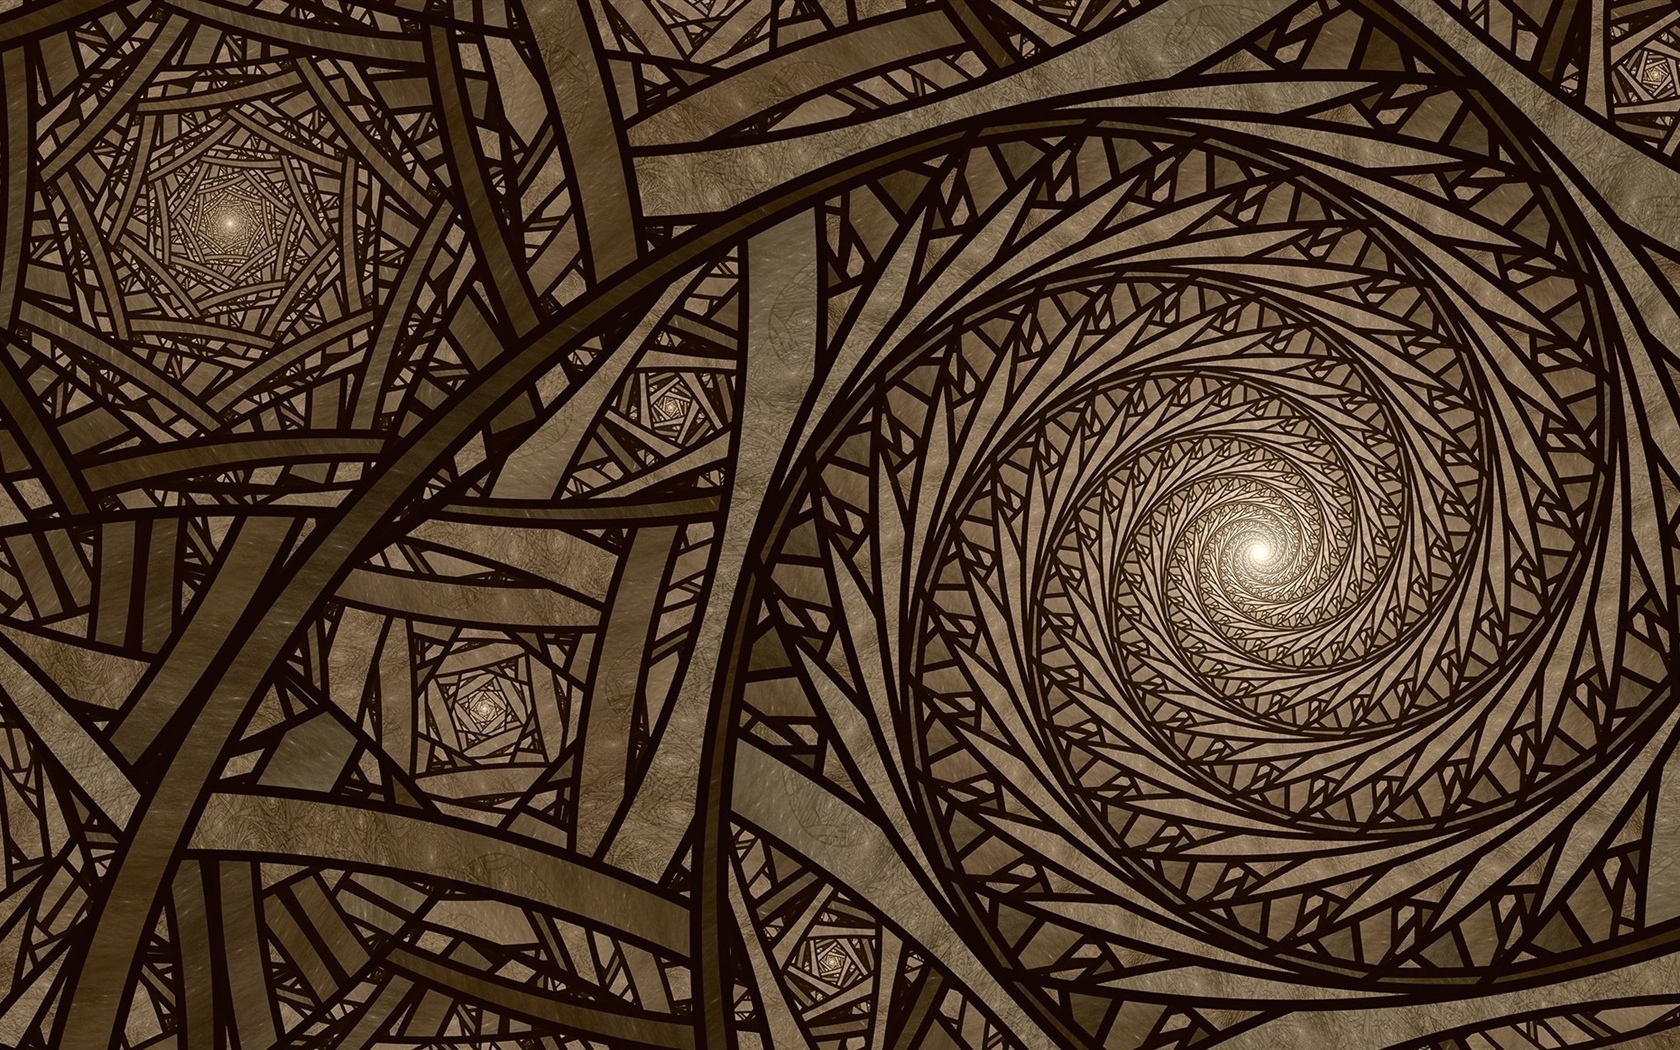 Abstract, spiral, light 1680x1050 wallpaper